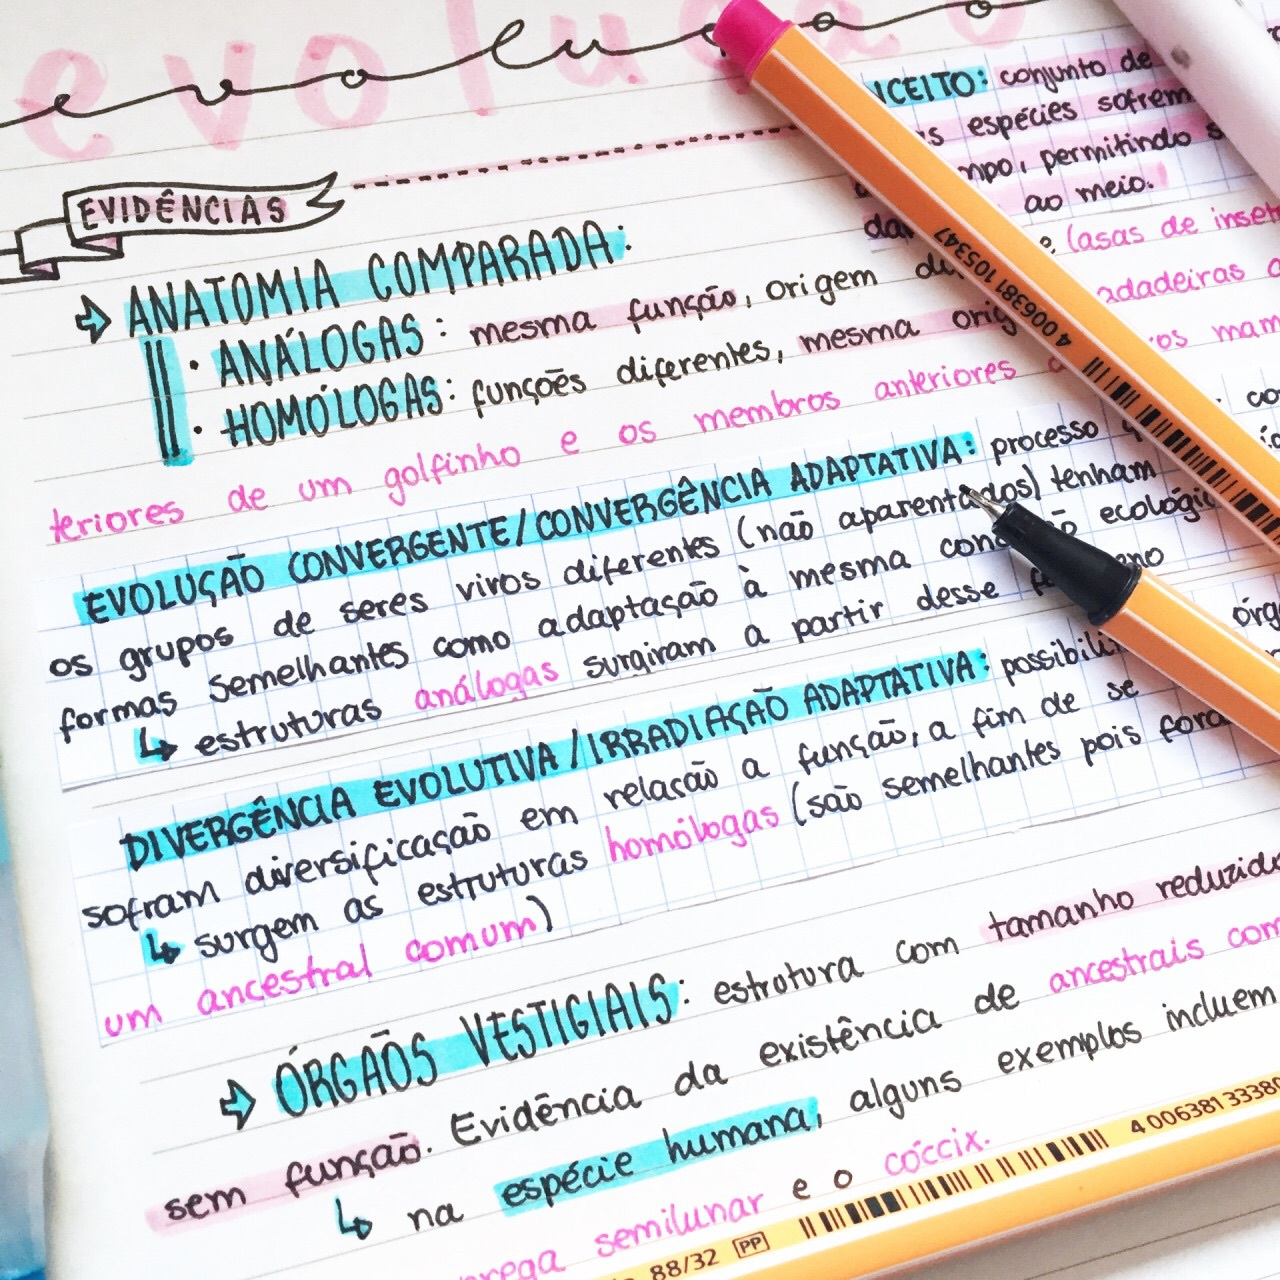 75 Images About School Study Relax On We Heart It See More